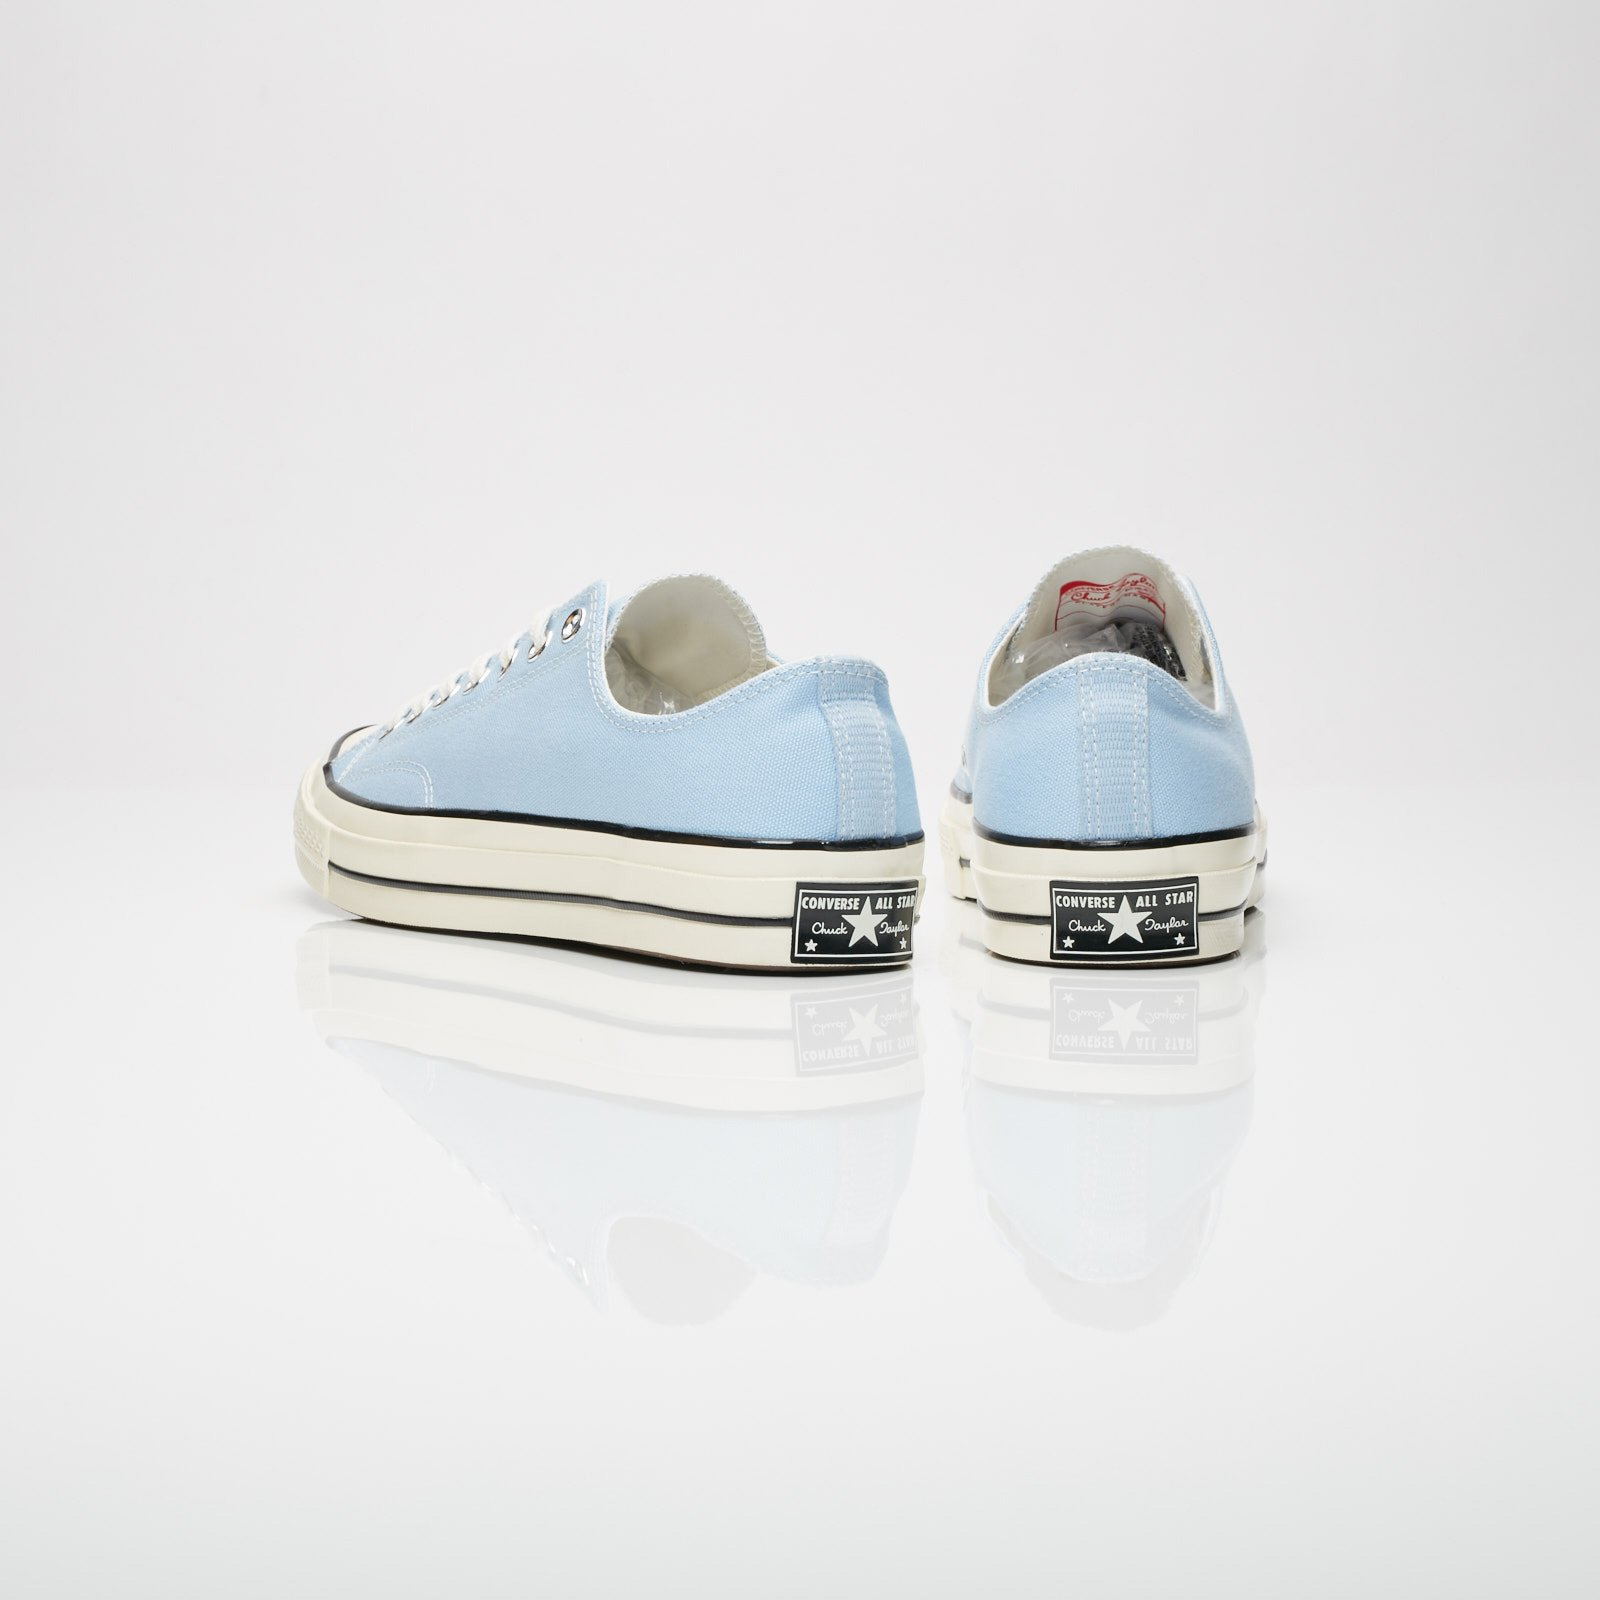 cd3a91b66280 Converse Chuck Taylor All Star 70s Ox - 159624c - Sneakersnstuff ...